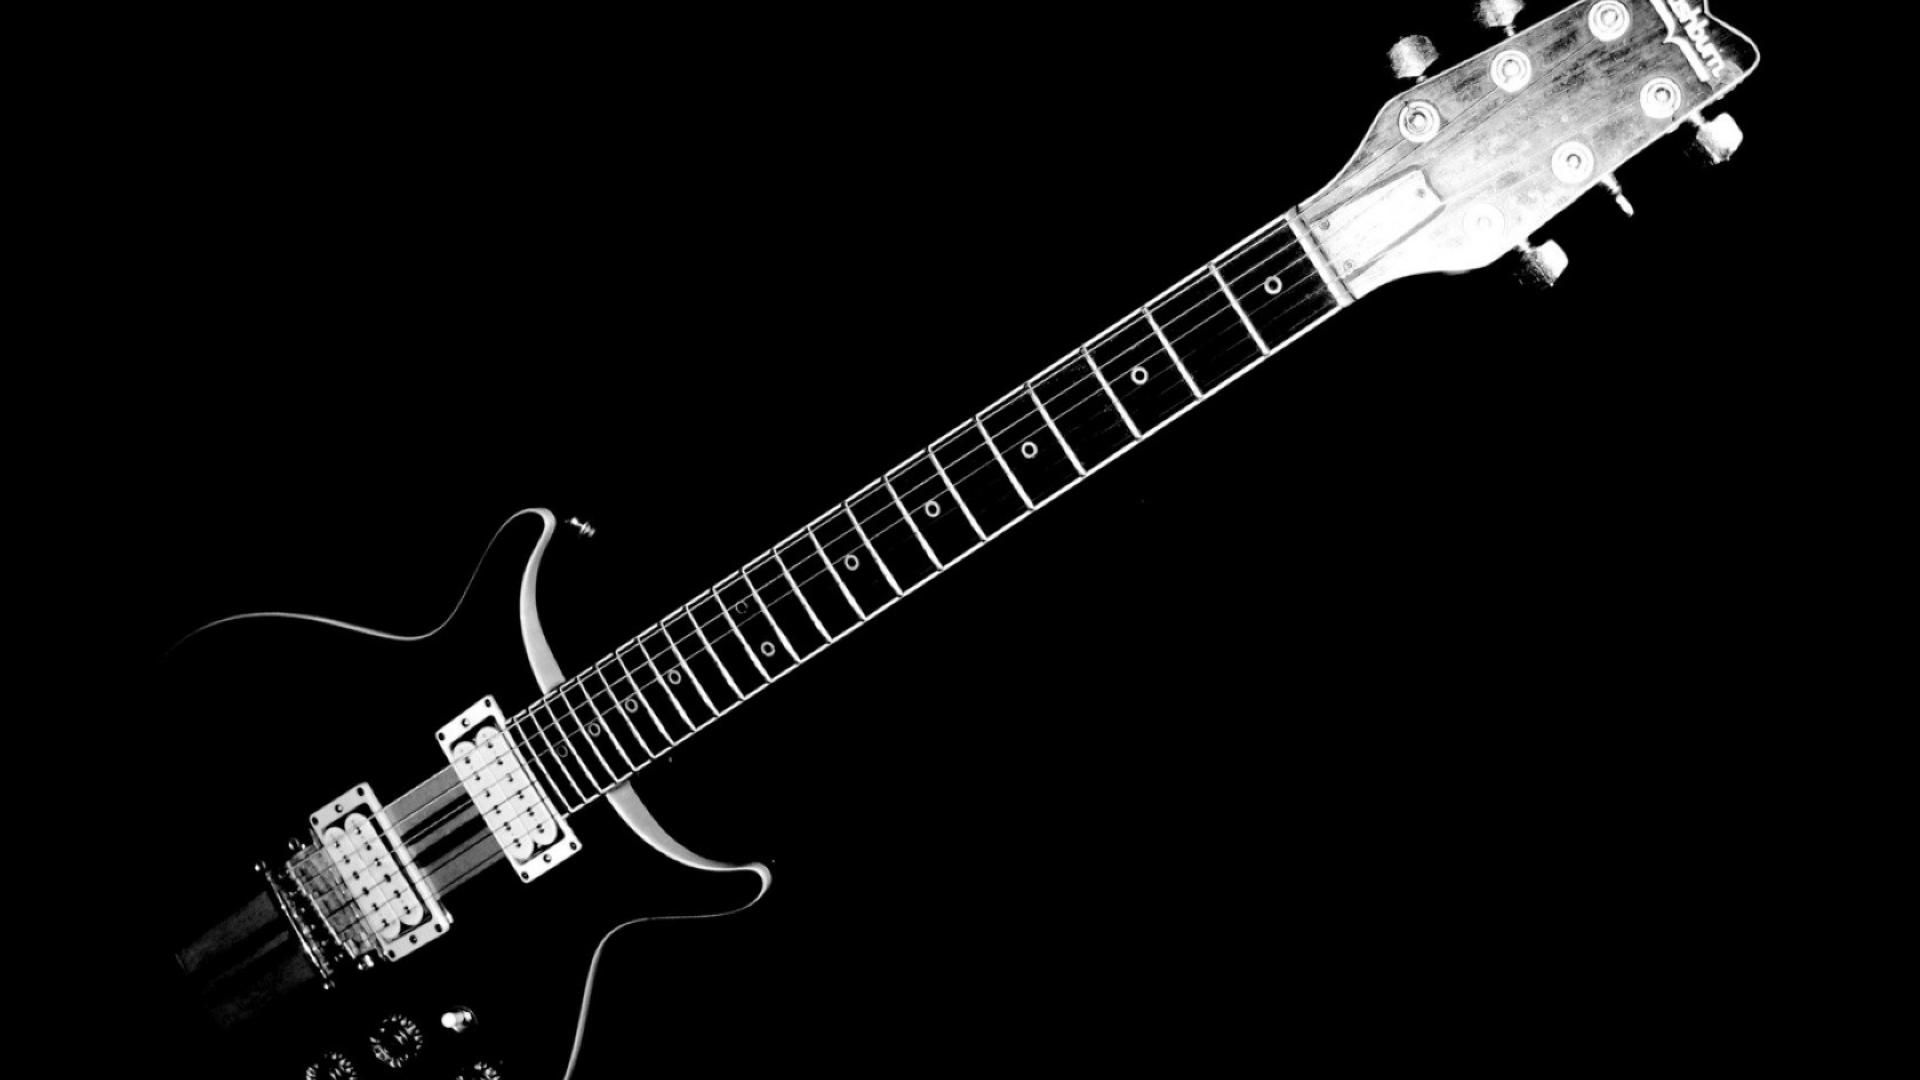 Hd wallpaper with black background - Guitar Wallpapers From Gch Guitar Academy